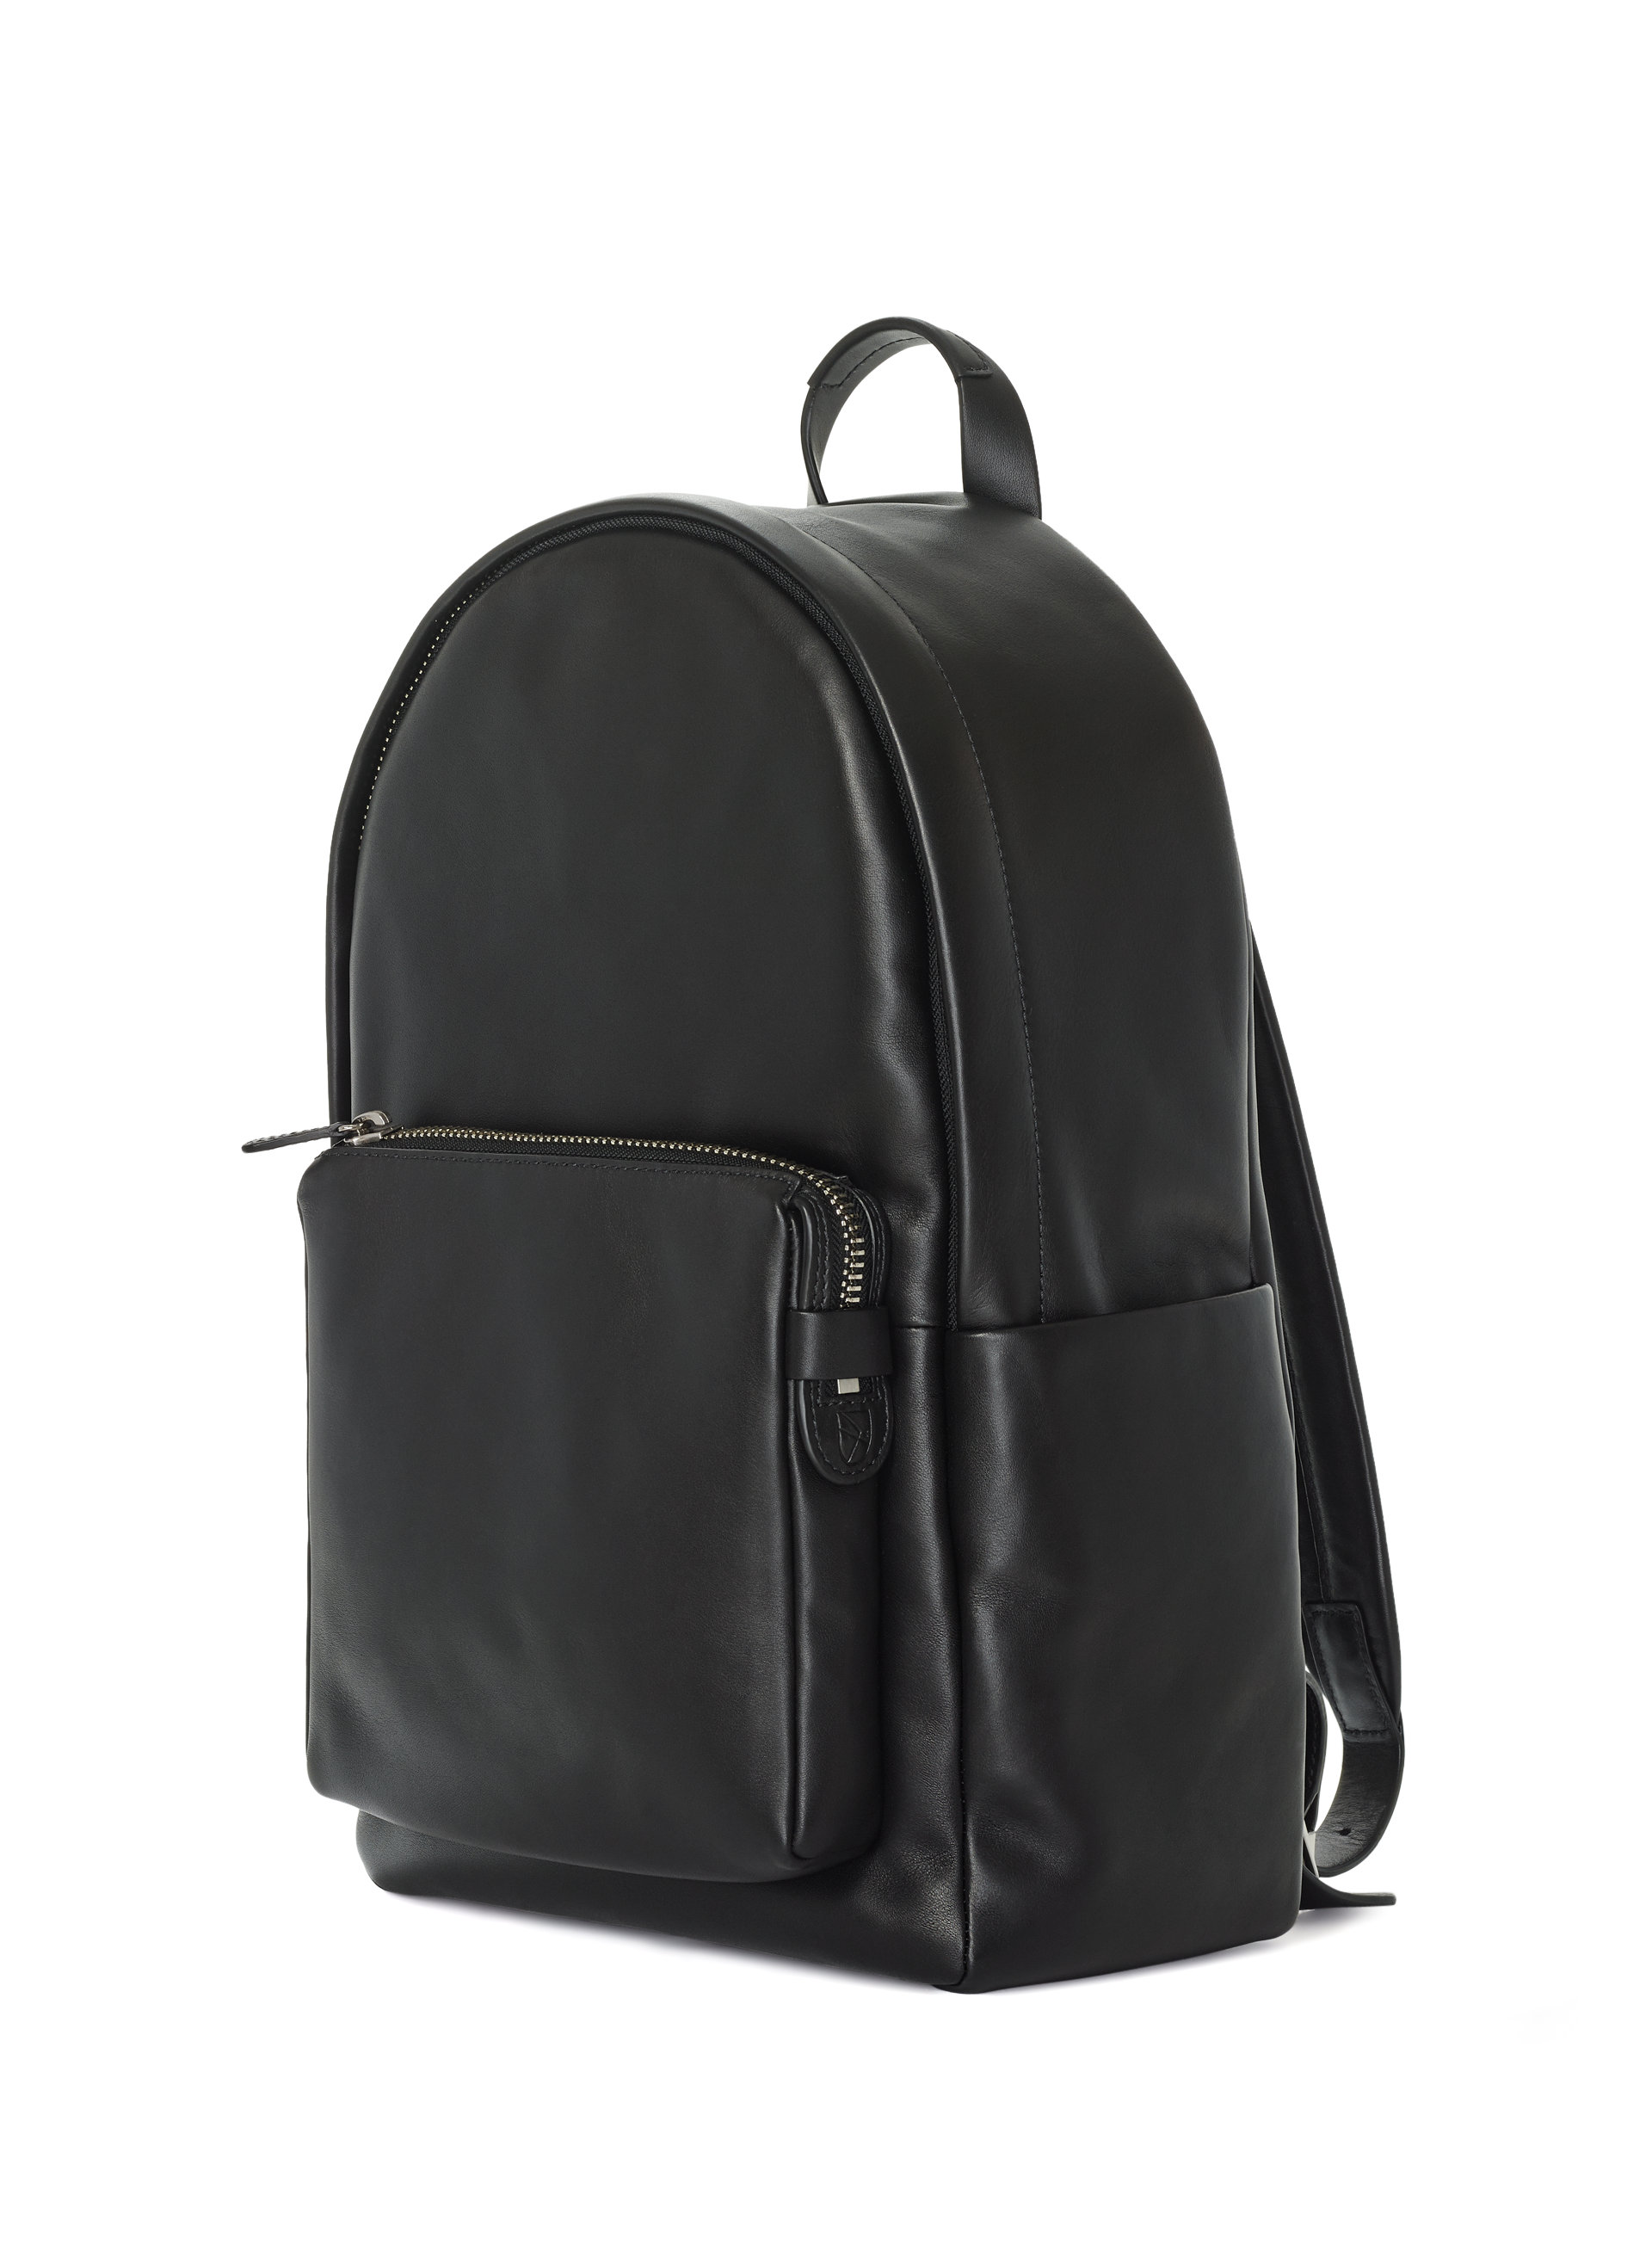 Eleven XANDER BACKPACK BAG | Aritzia